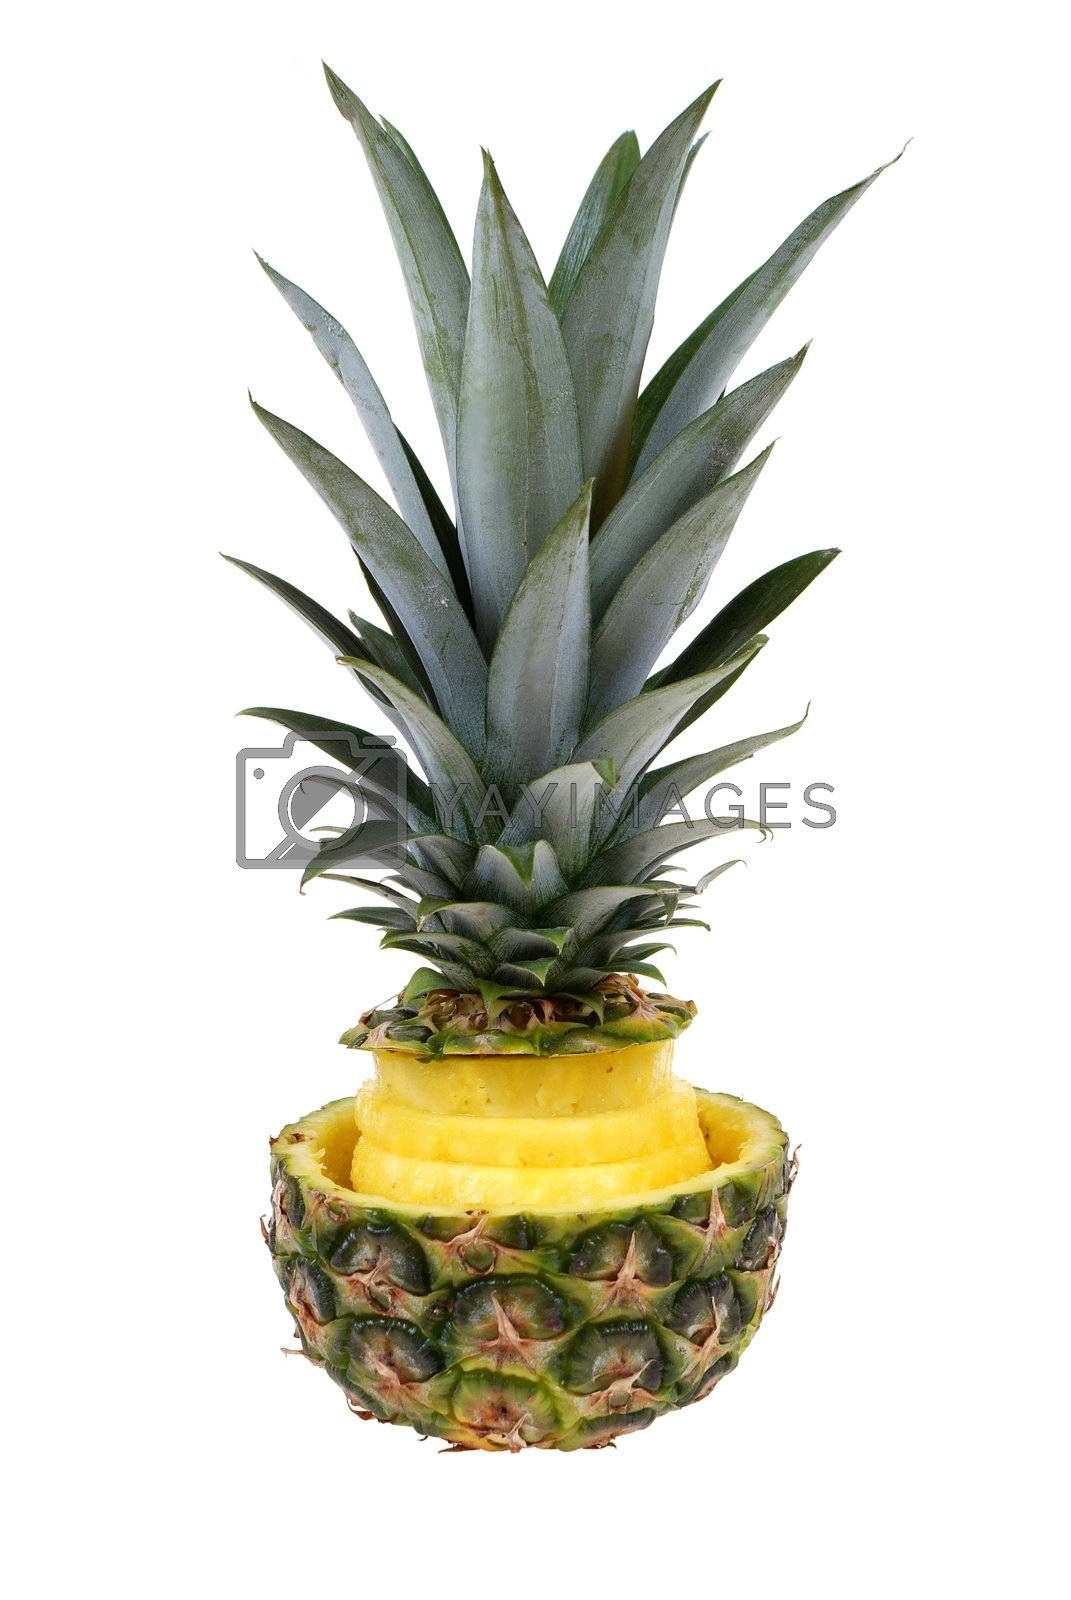 pineapple with discs in shell with leafs isolated on white background